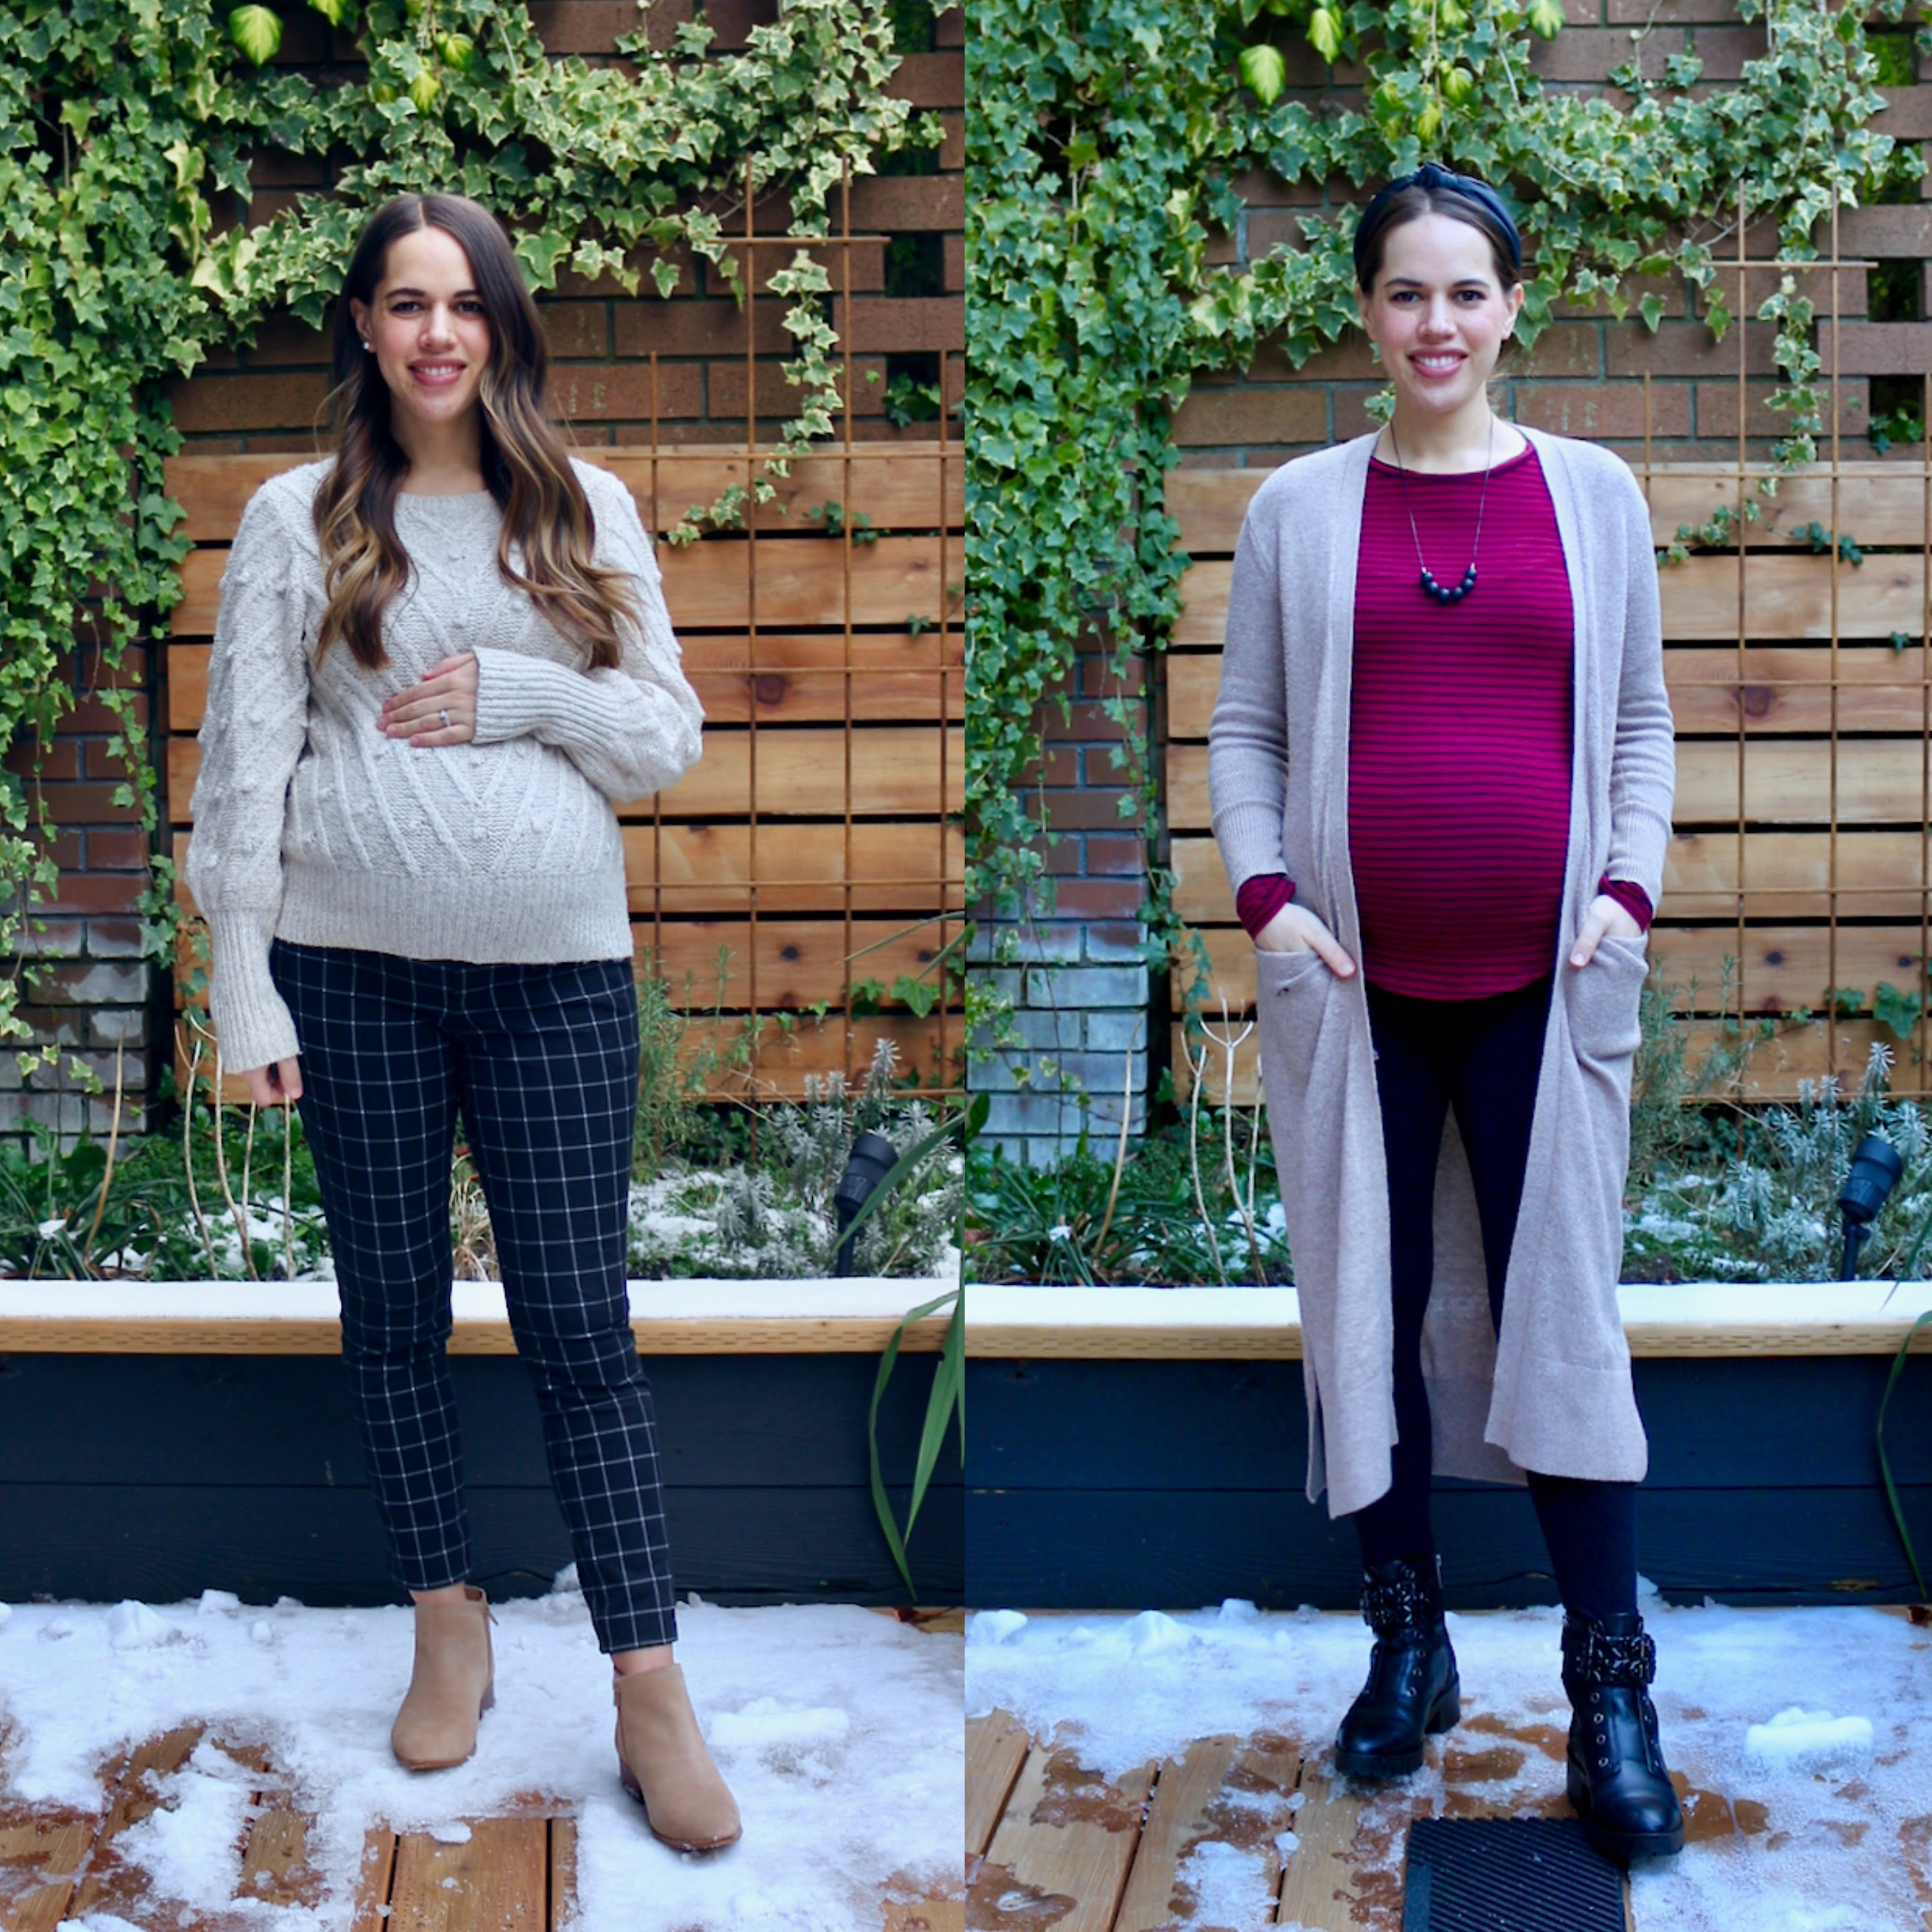 Jules in Flats - What I Wore to Work in February (Business Casual Workwear on a Budget) Week 2